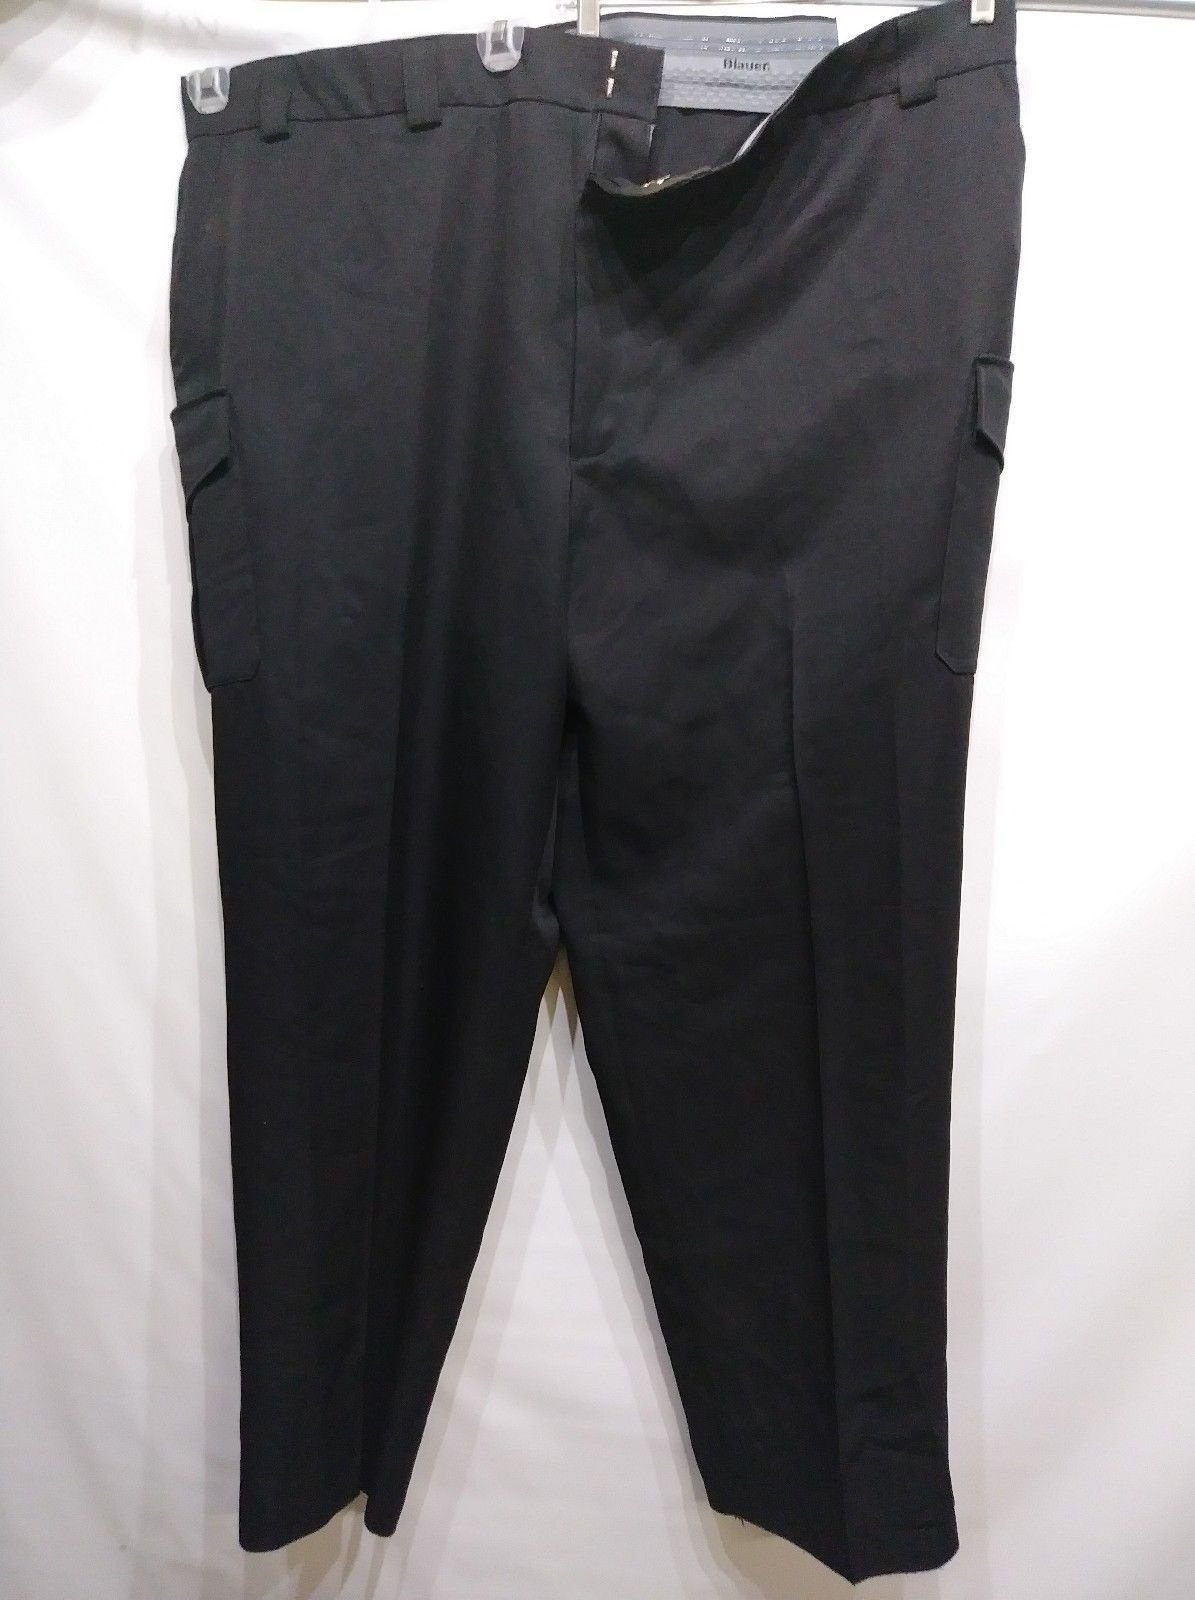 BLAUER SIDE POCKET POLYESTER TROUSERS BLACK SIZE 55 X 36 STYLE 8655 BRAND NEW